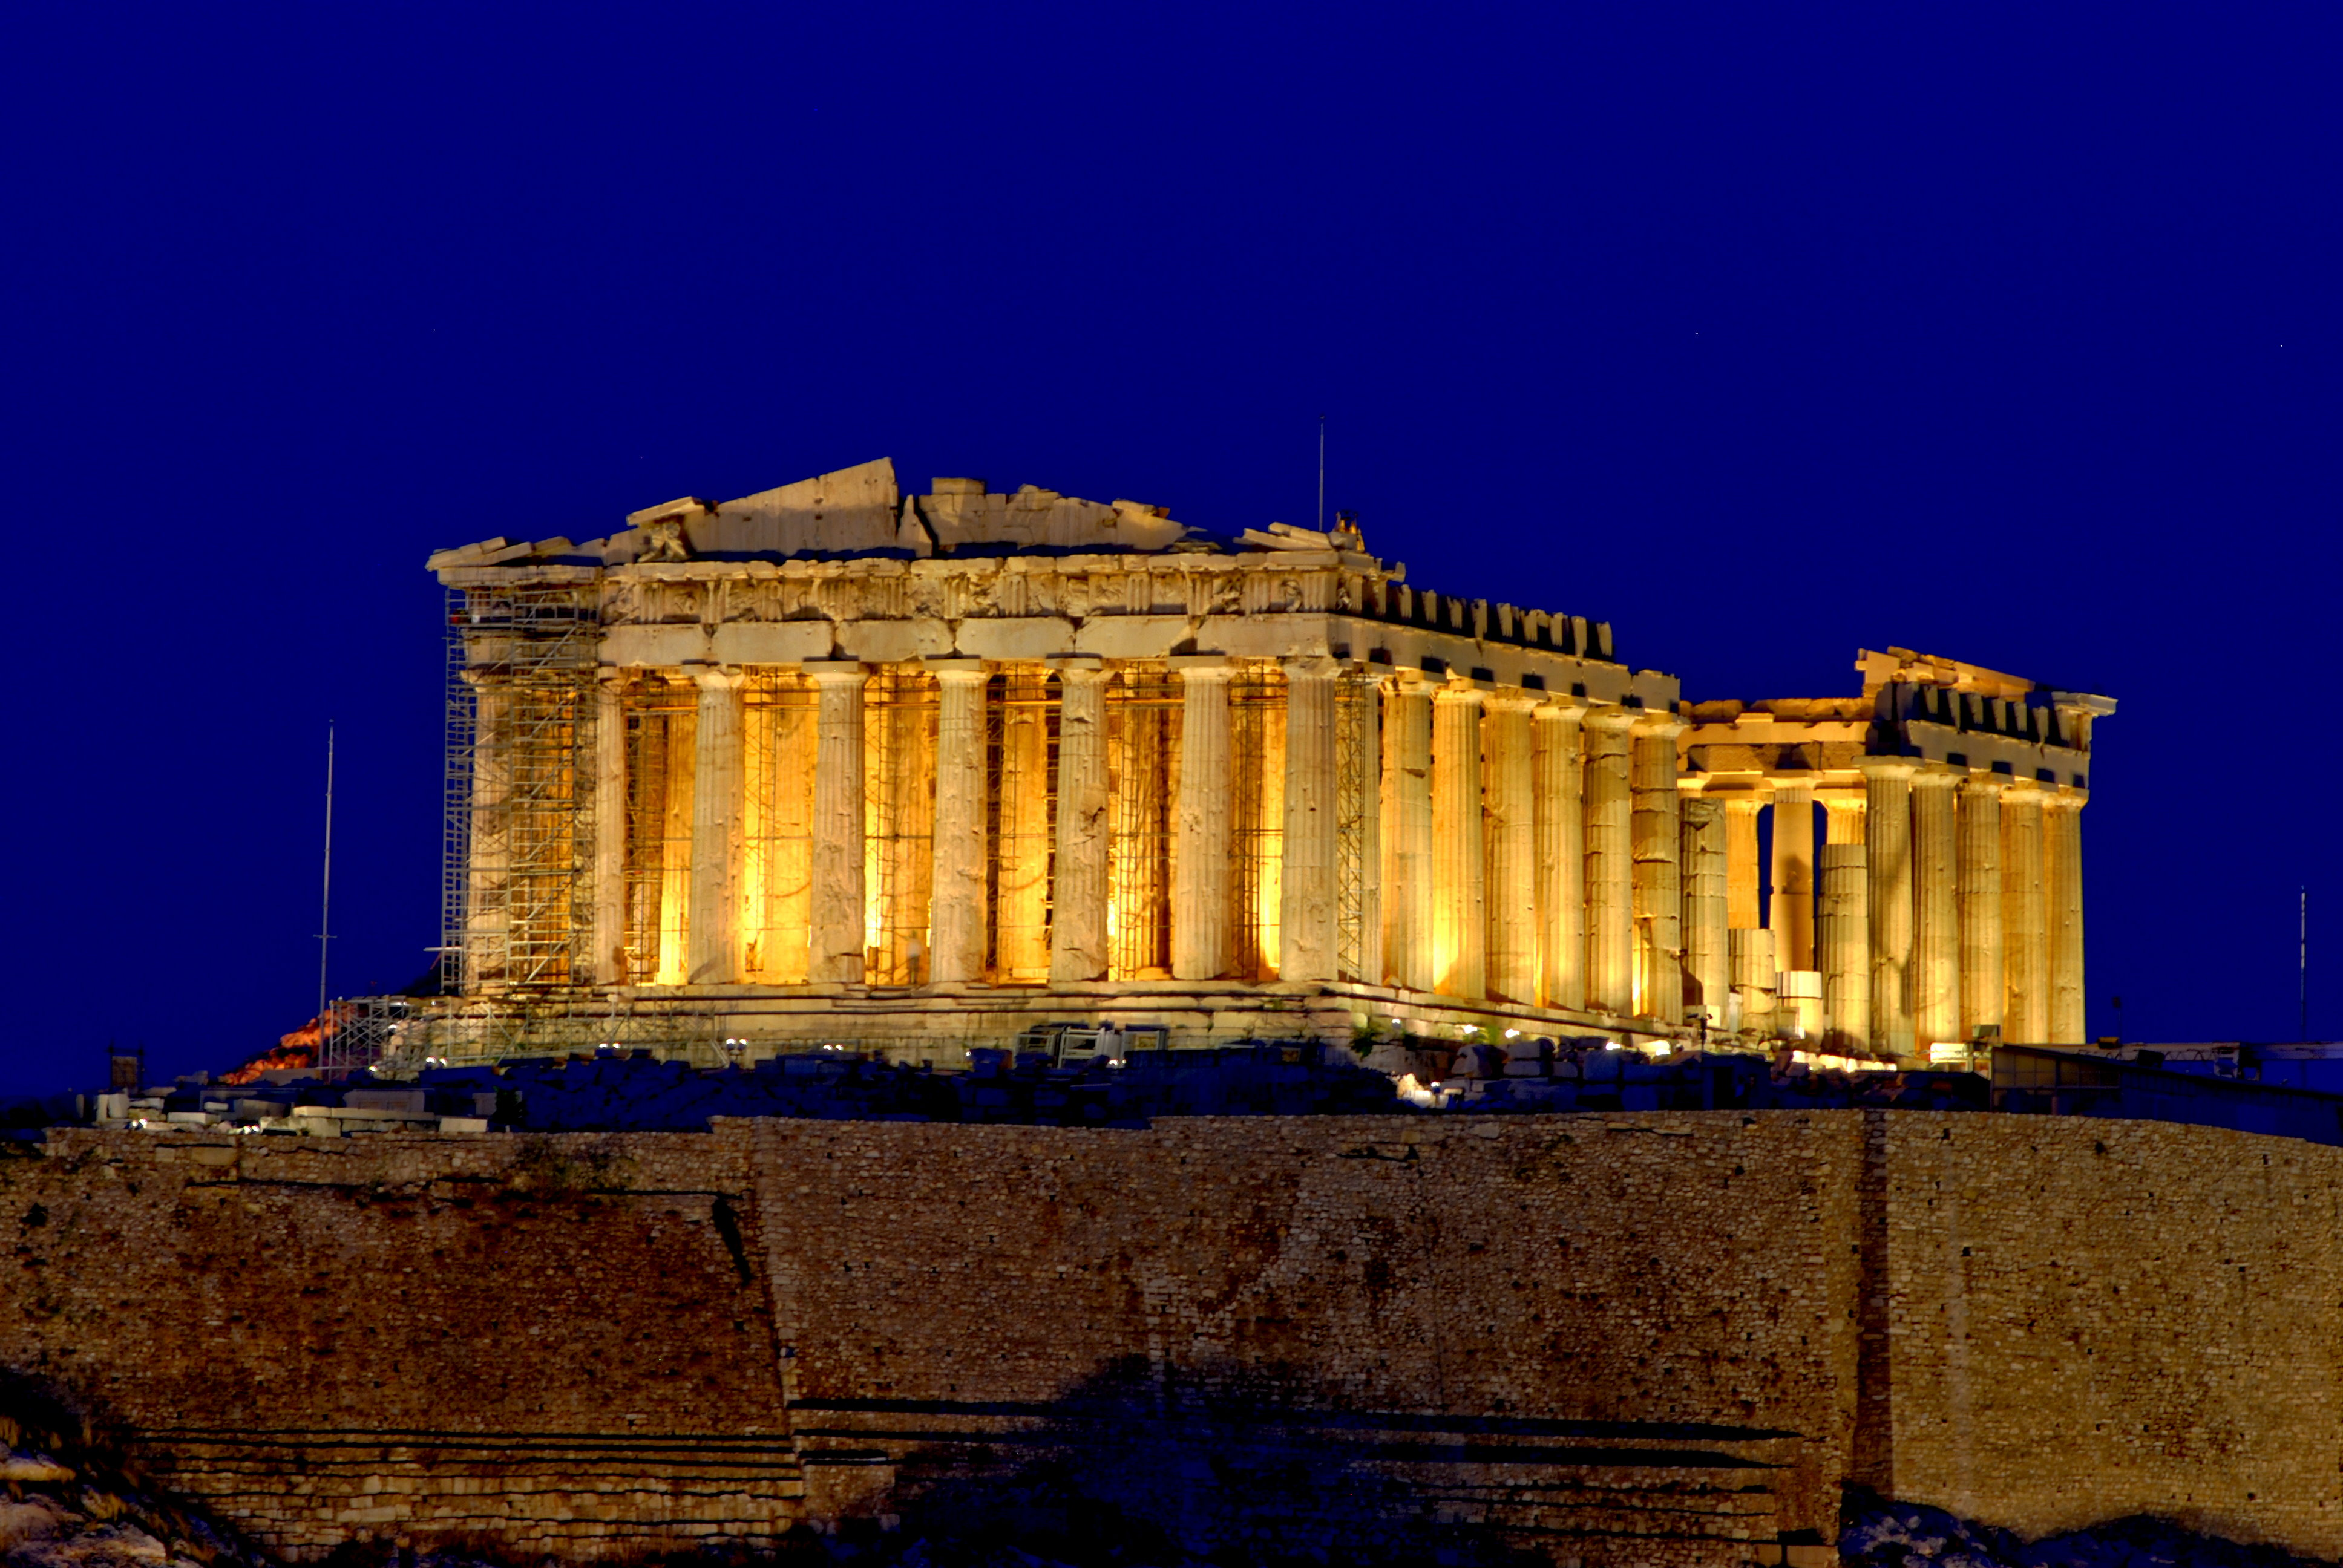 an analysis of athena in the greek olympic pantheon More an analysis of athena in the greek olympic pantheon here aviation, defense and space news, jobs, an analysis of gambling with the future and conferences always.